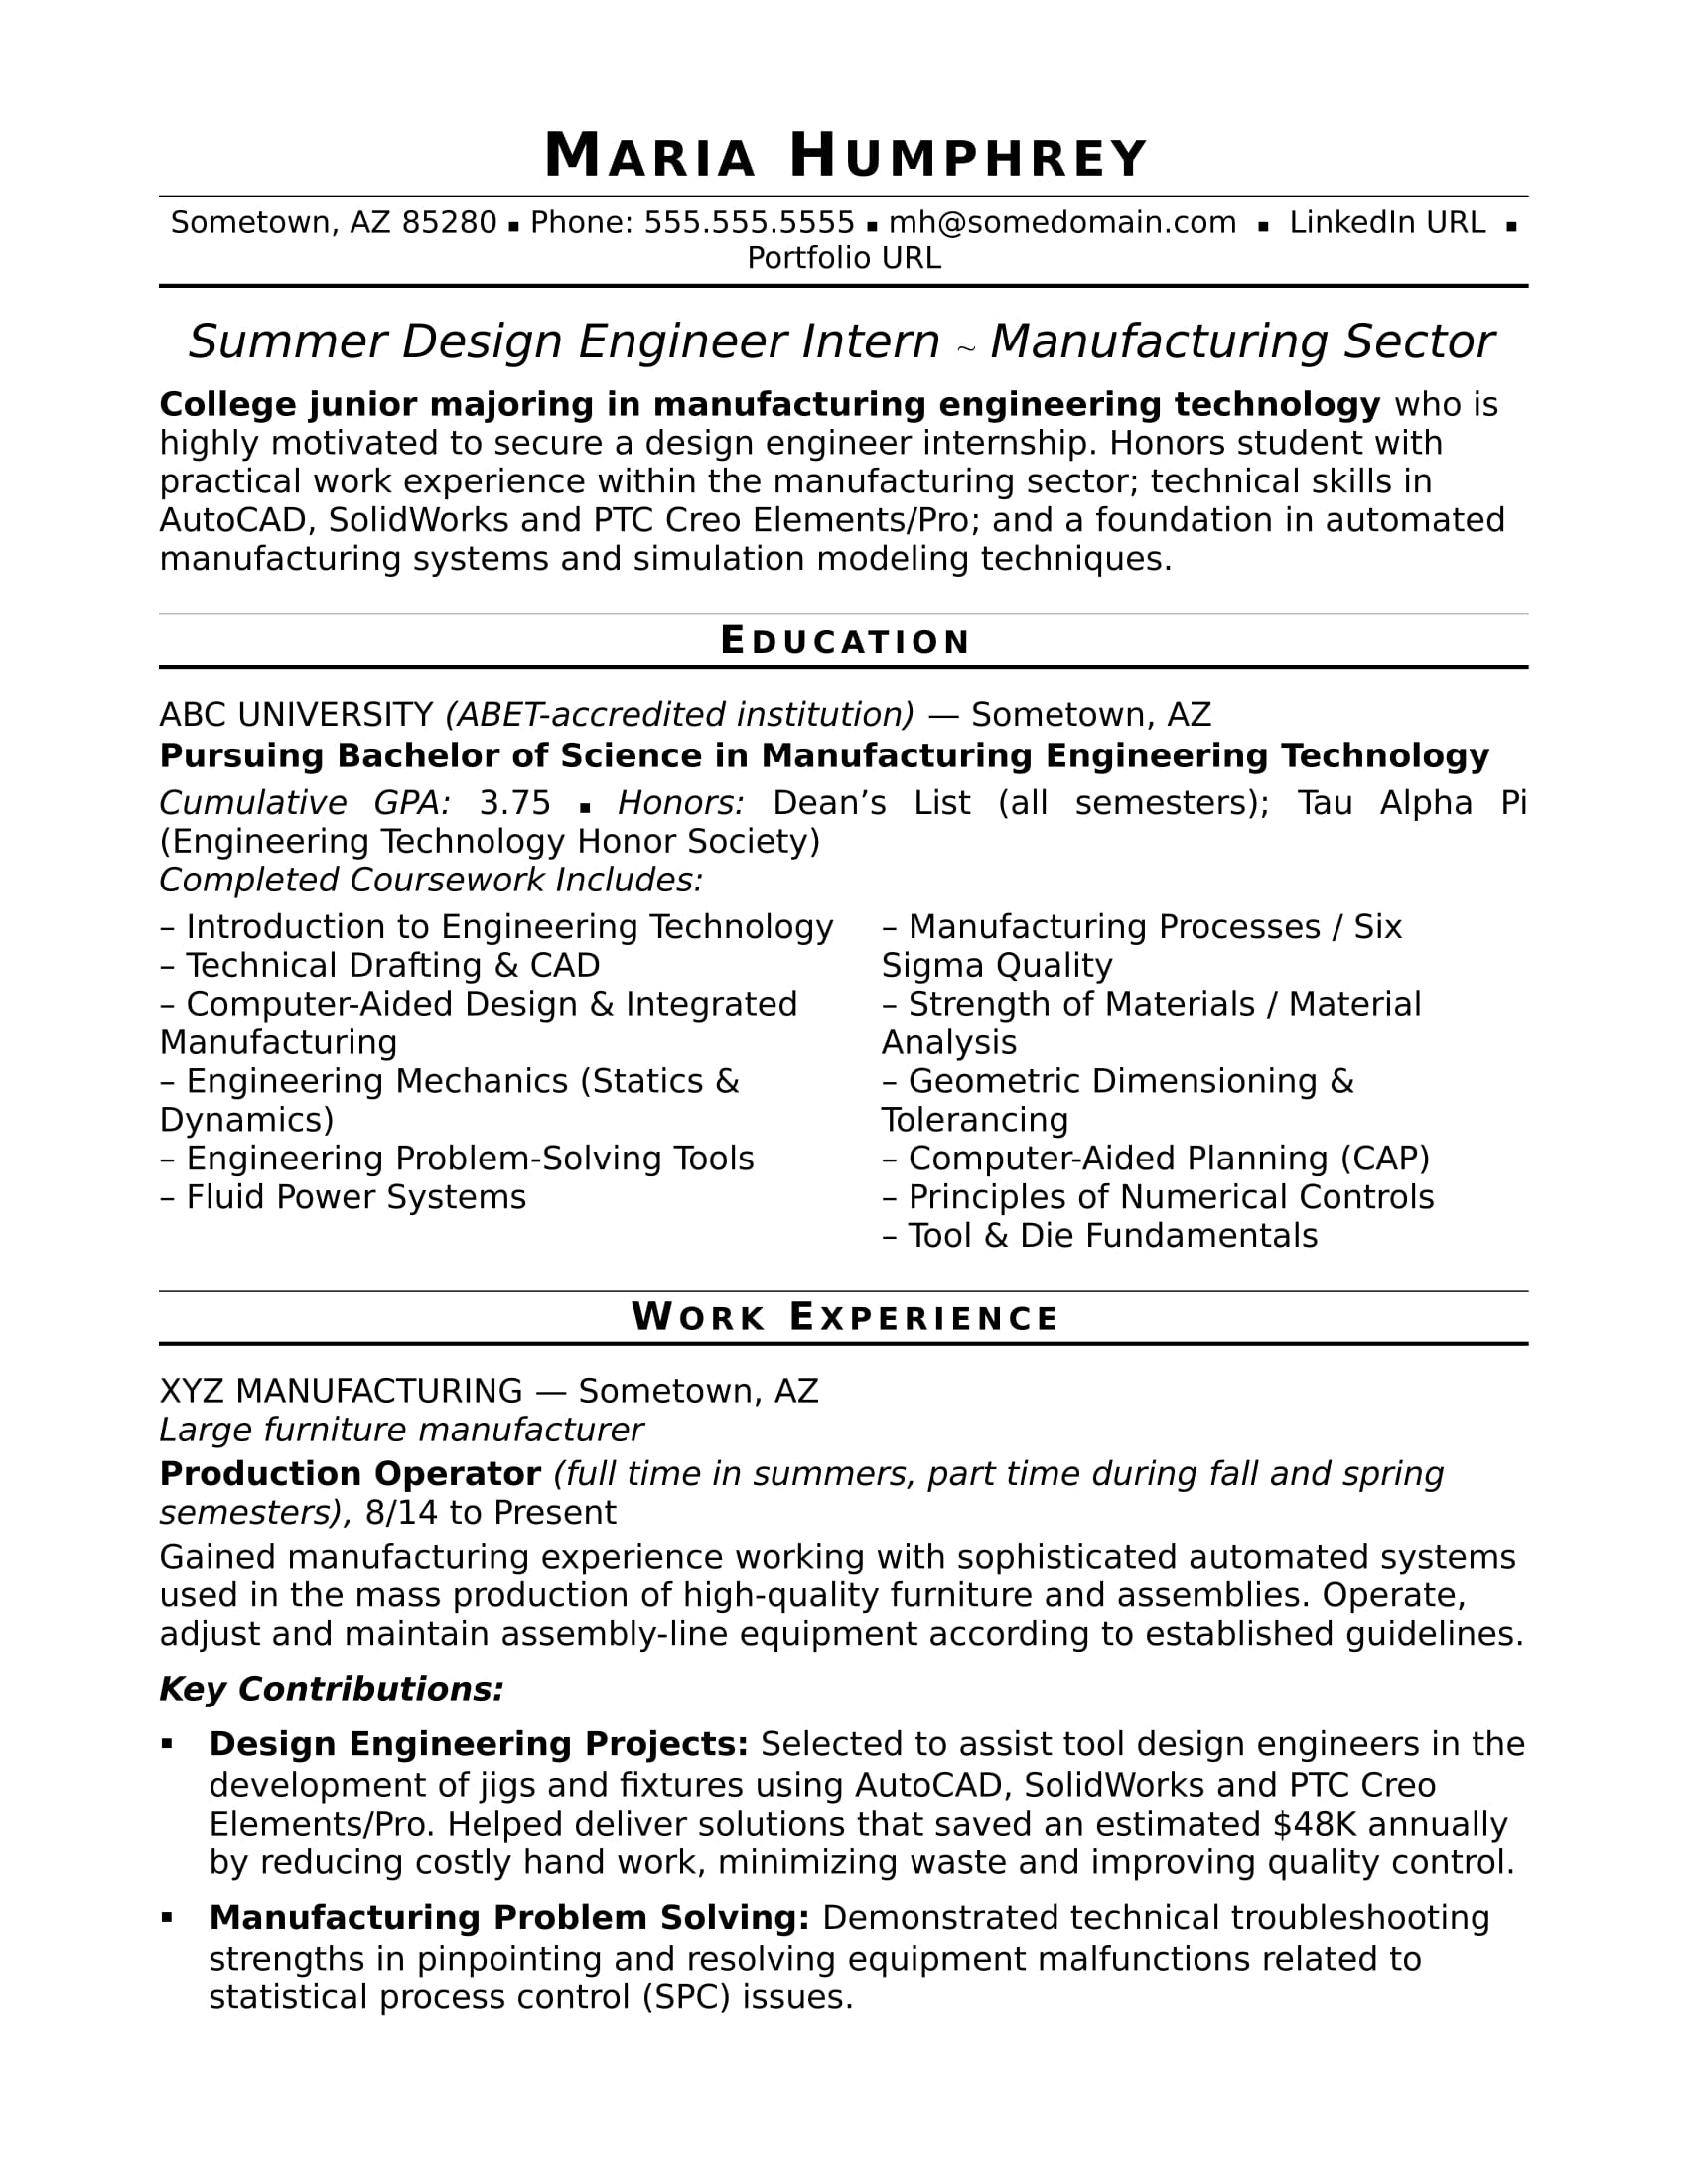 sample resume for an entry level design engineer monstercom process example of ojt qc Resume Process Design Engineer Resume Sample